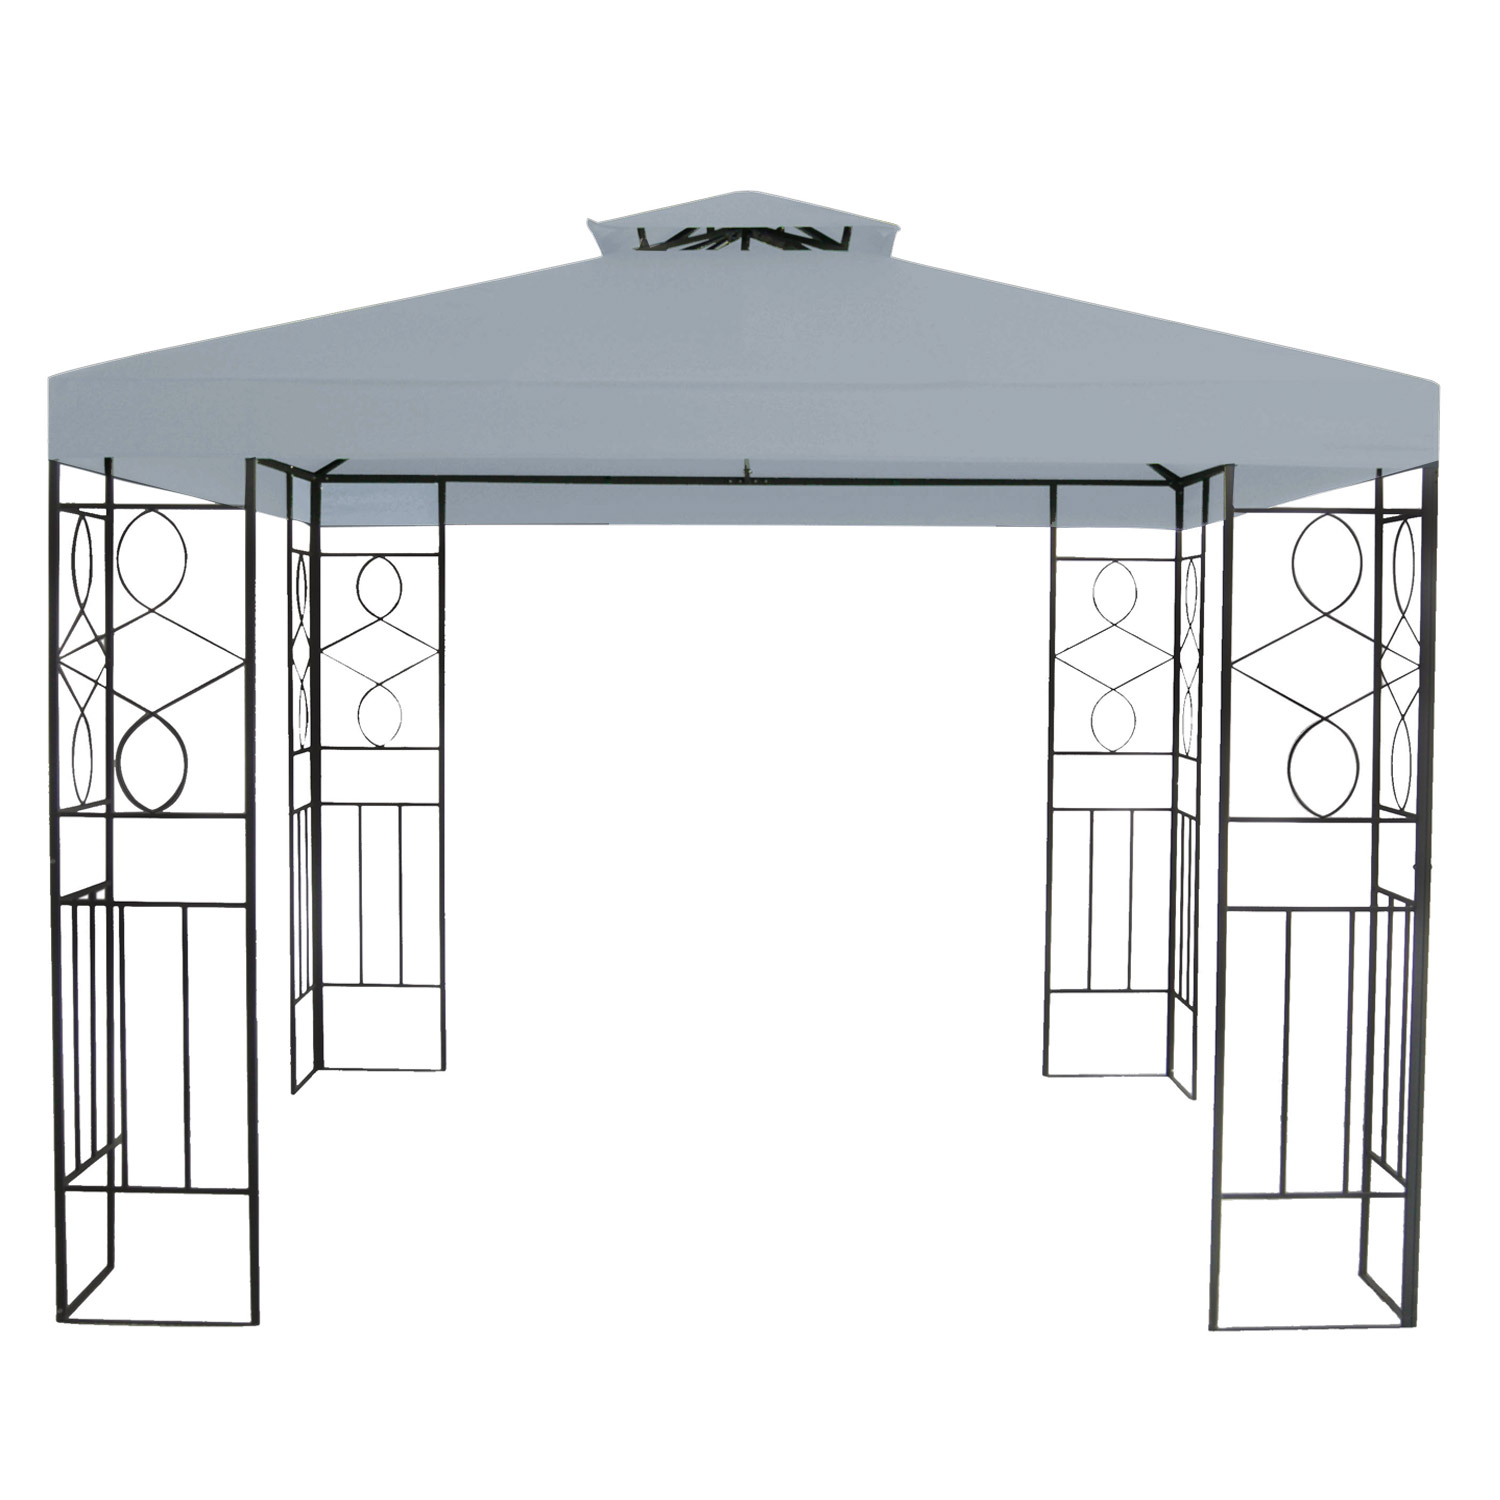 metall gartenpavillon 3x3 gazebo mit entl ftungsfunktion garten pavillon grau. Black Bedroom Furniture Sets. Home Design Ideas